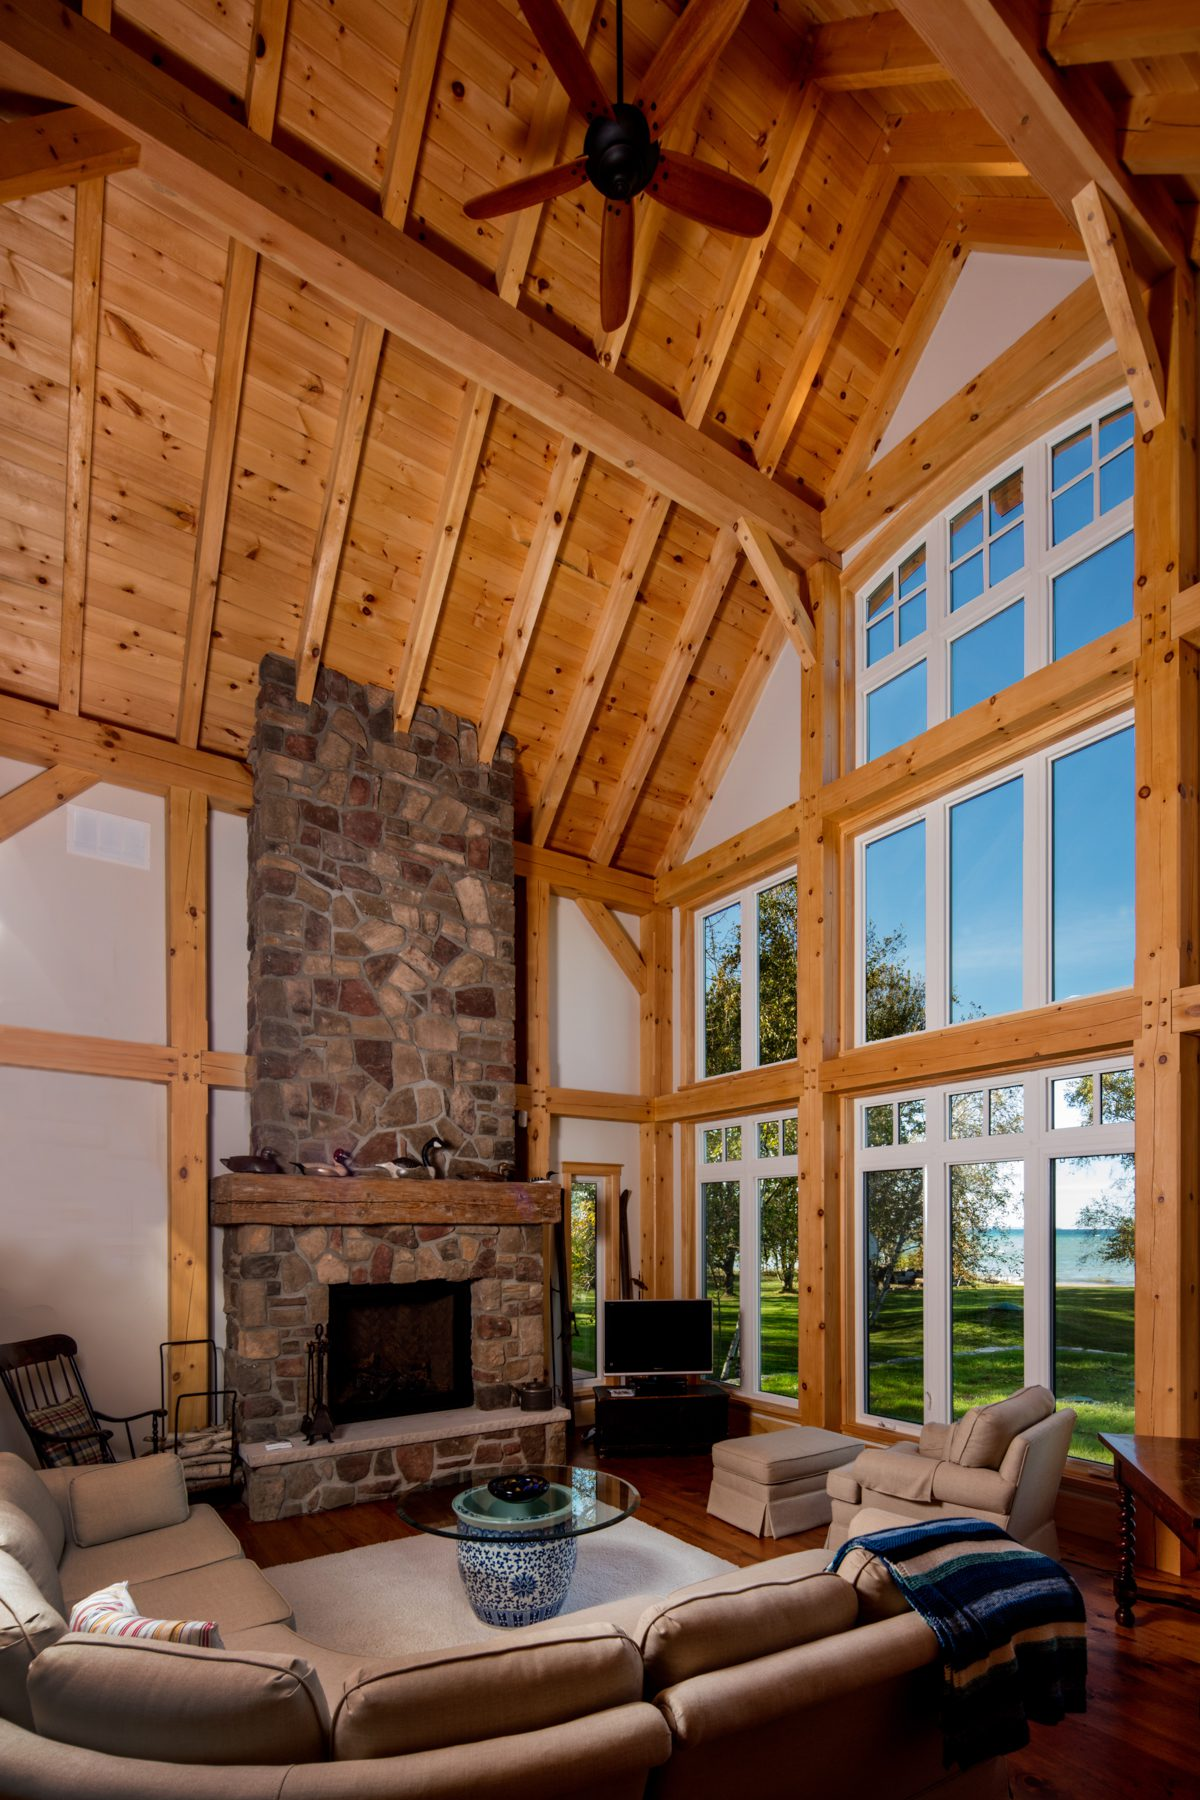 Normerica Timber Frame, Interior, Cottage, Living Room, Great Room, Fireplace, Cathedral Ceiling, View of the Lake